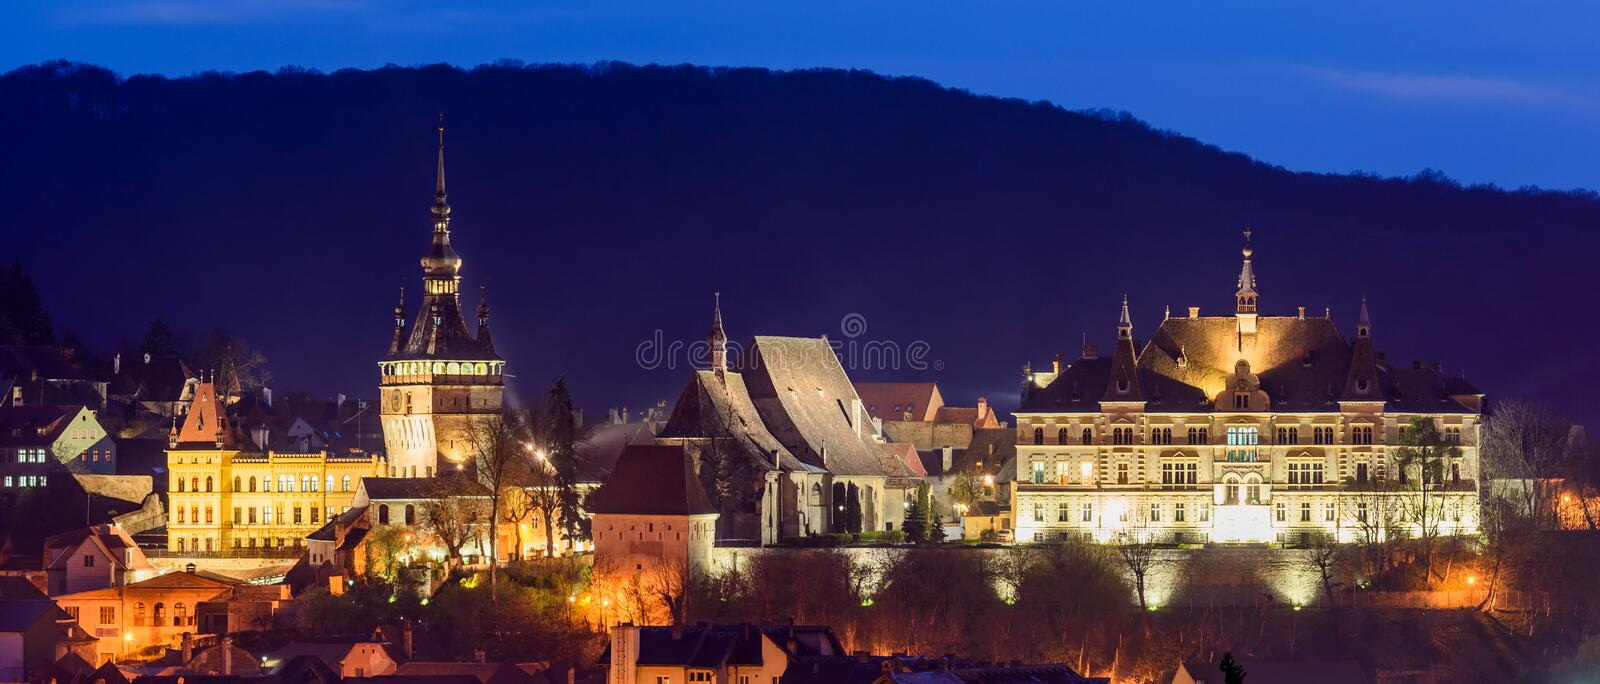 Sighisoara, at night royalty free stock photo